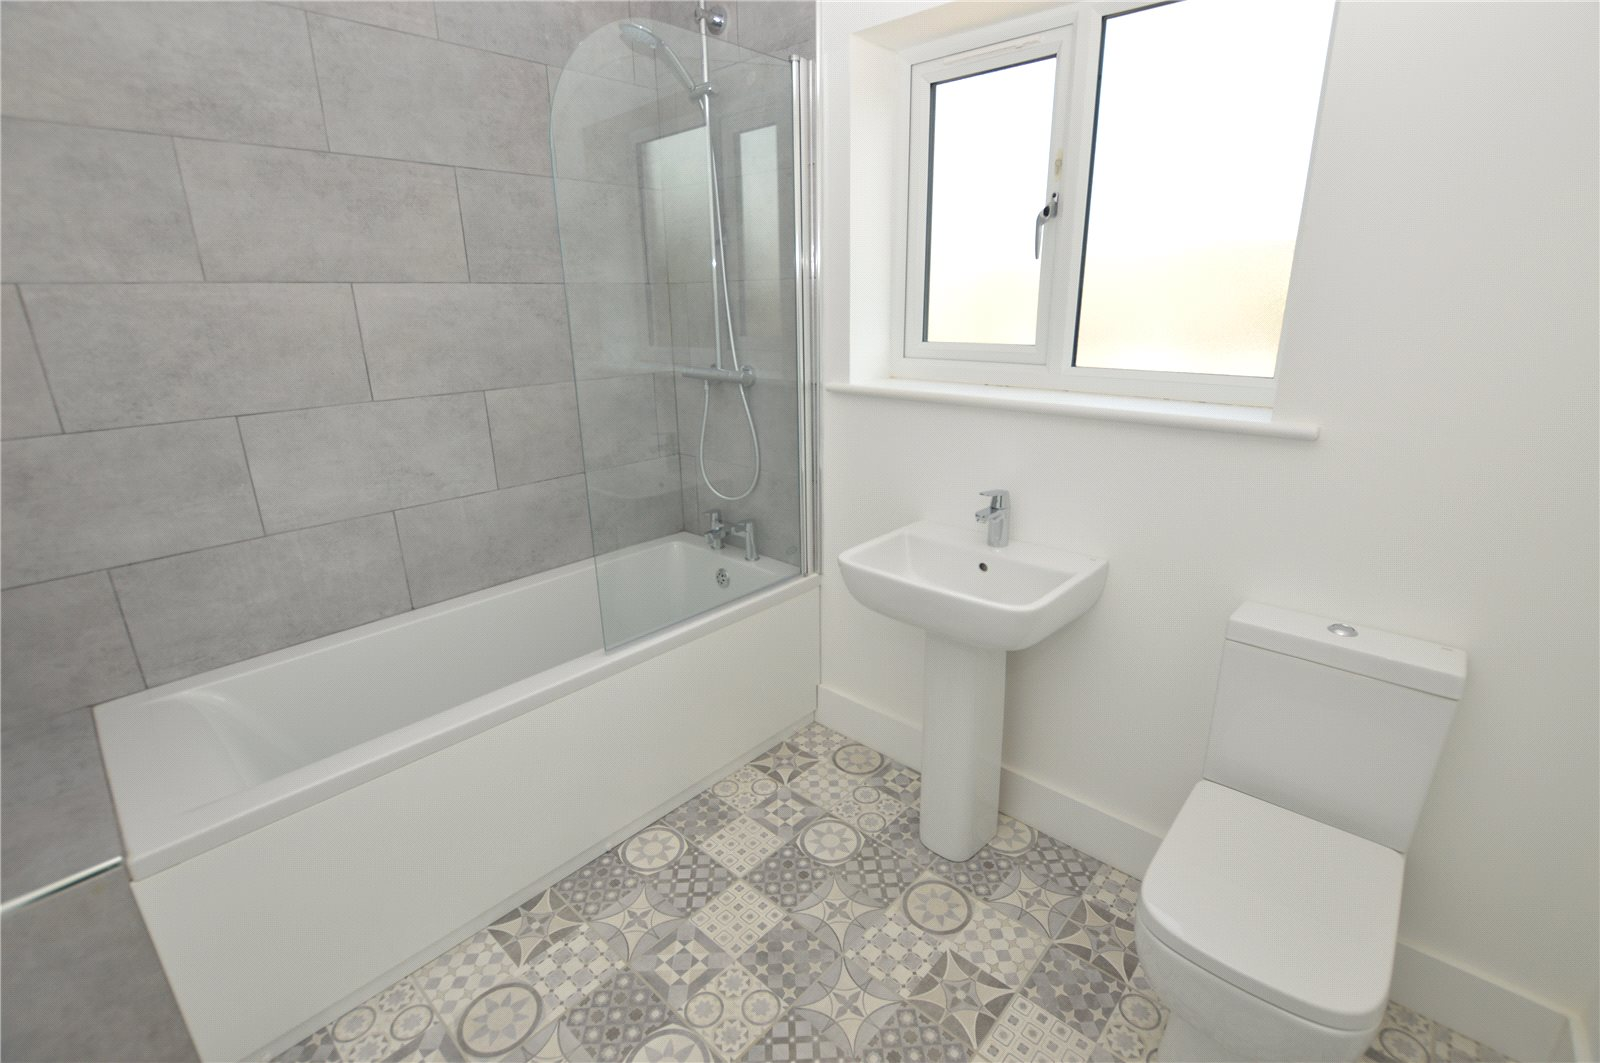 Property for sale in Rothwell, New build, Modern bathroom and grey patterned tiles